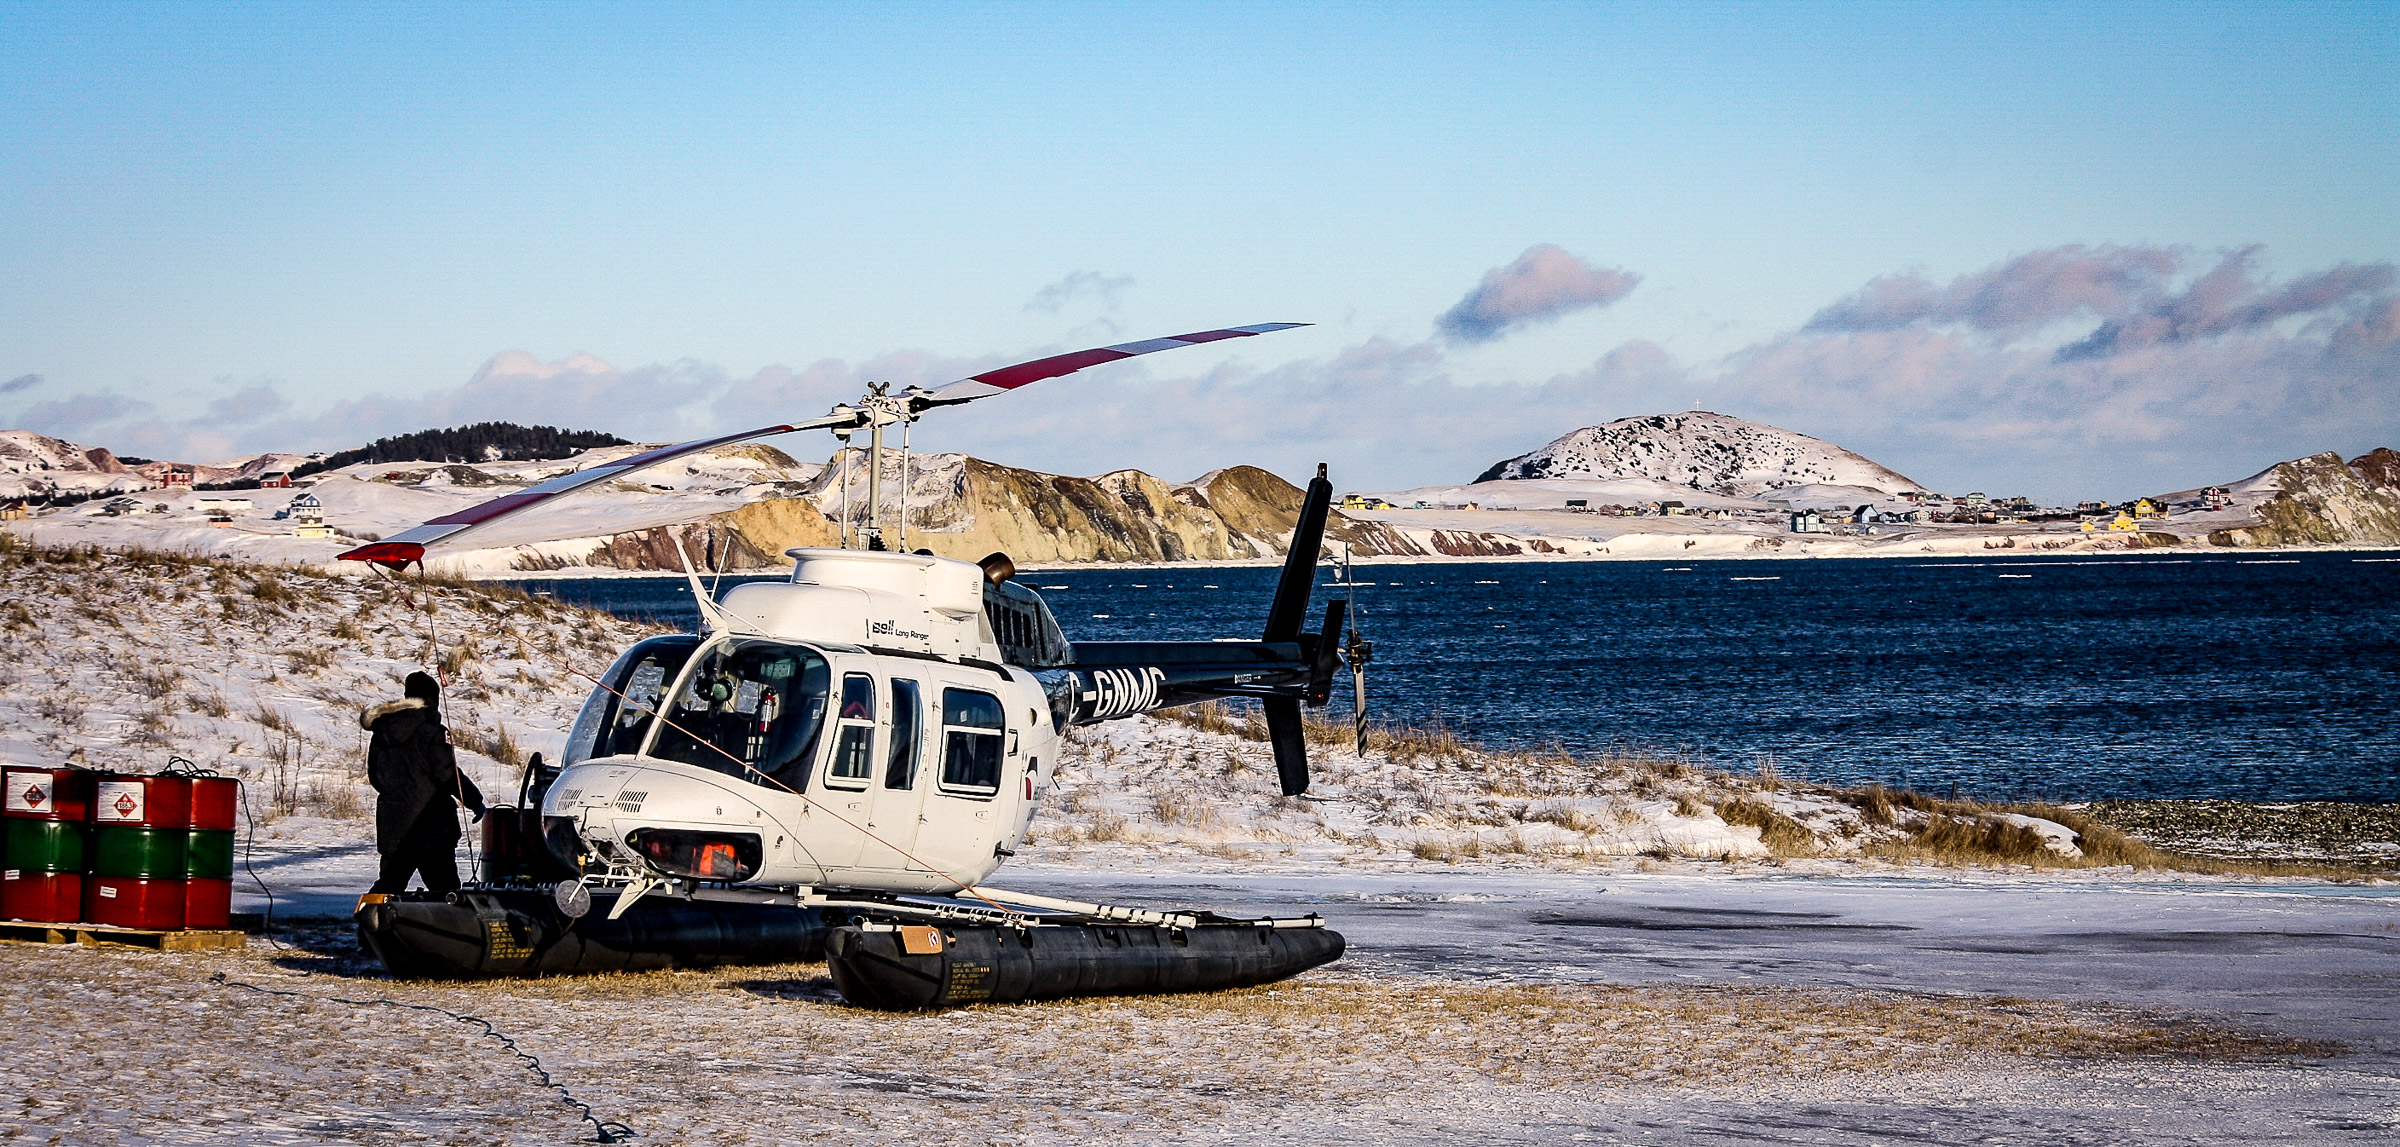 Les Îles-de-la-Madeleine is one of the few places in the world that can accommodate seal-tourism. During that short winter season, helicopters dispatch for excursions several times a day from a beachfront in view of the island's small community. JONAA©Andrea King